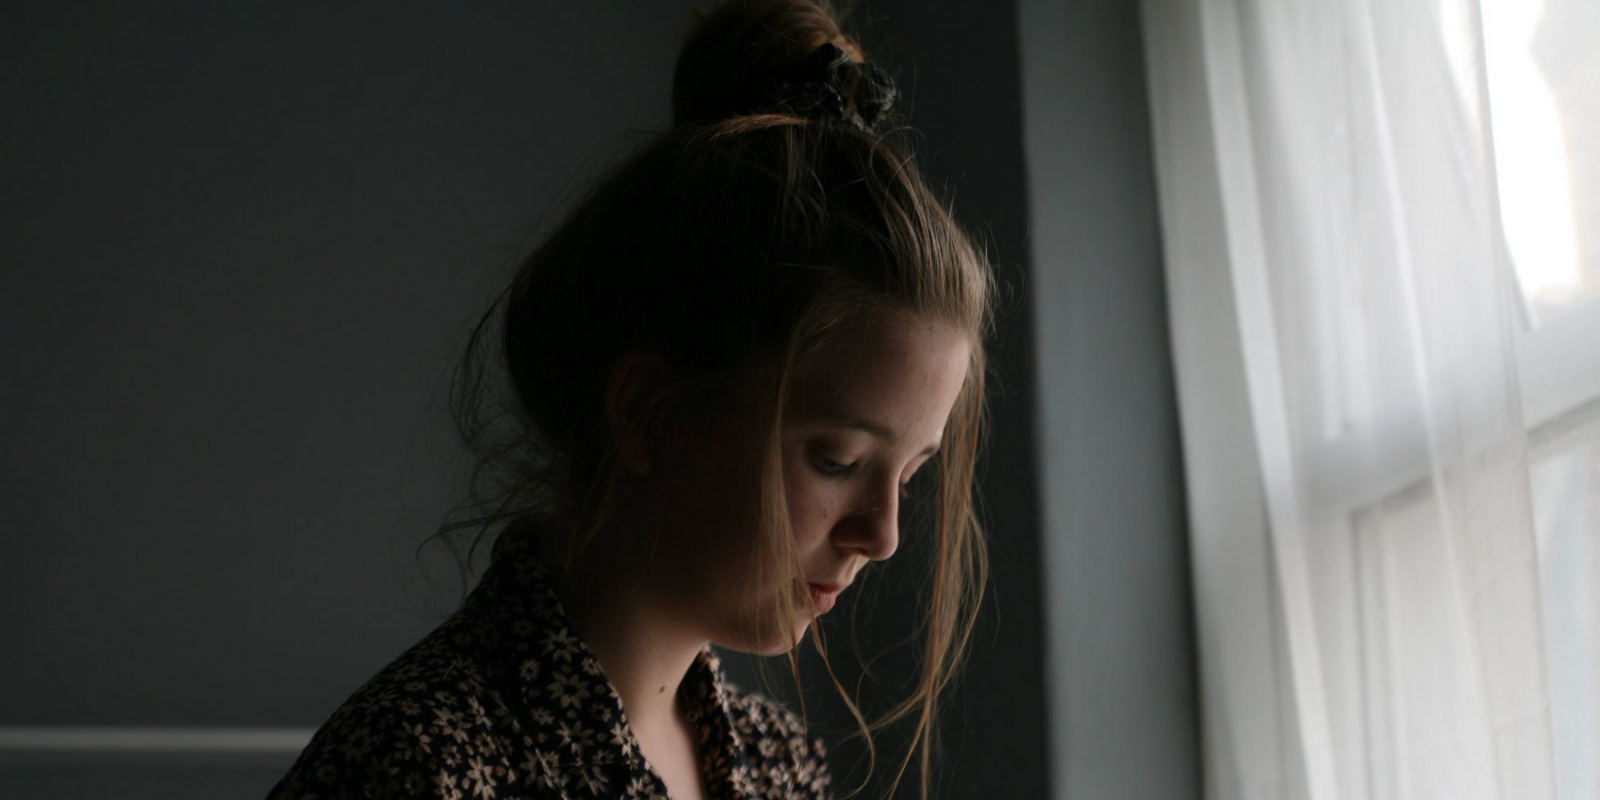 Suicide rates among Seattle-area youth up 30 percent during pandemic